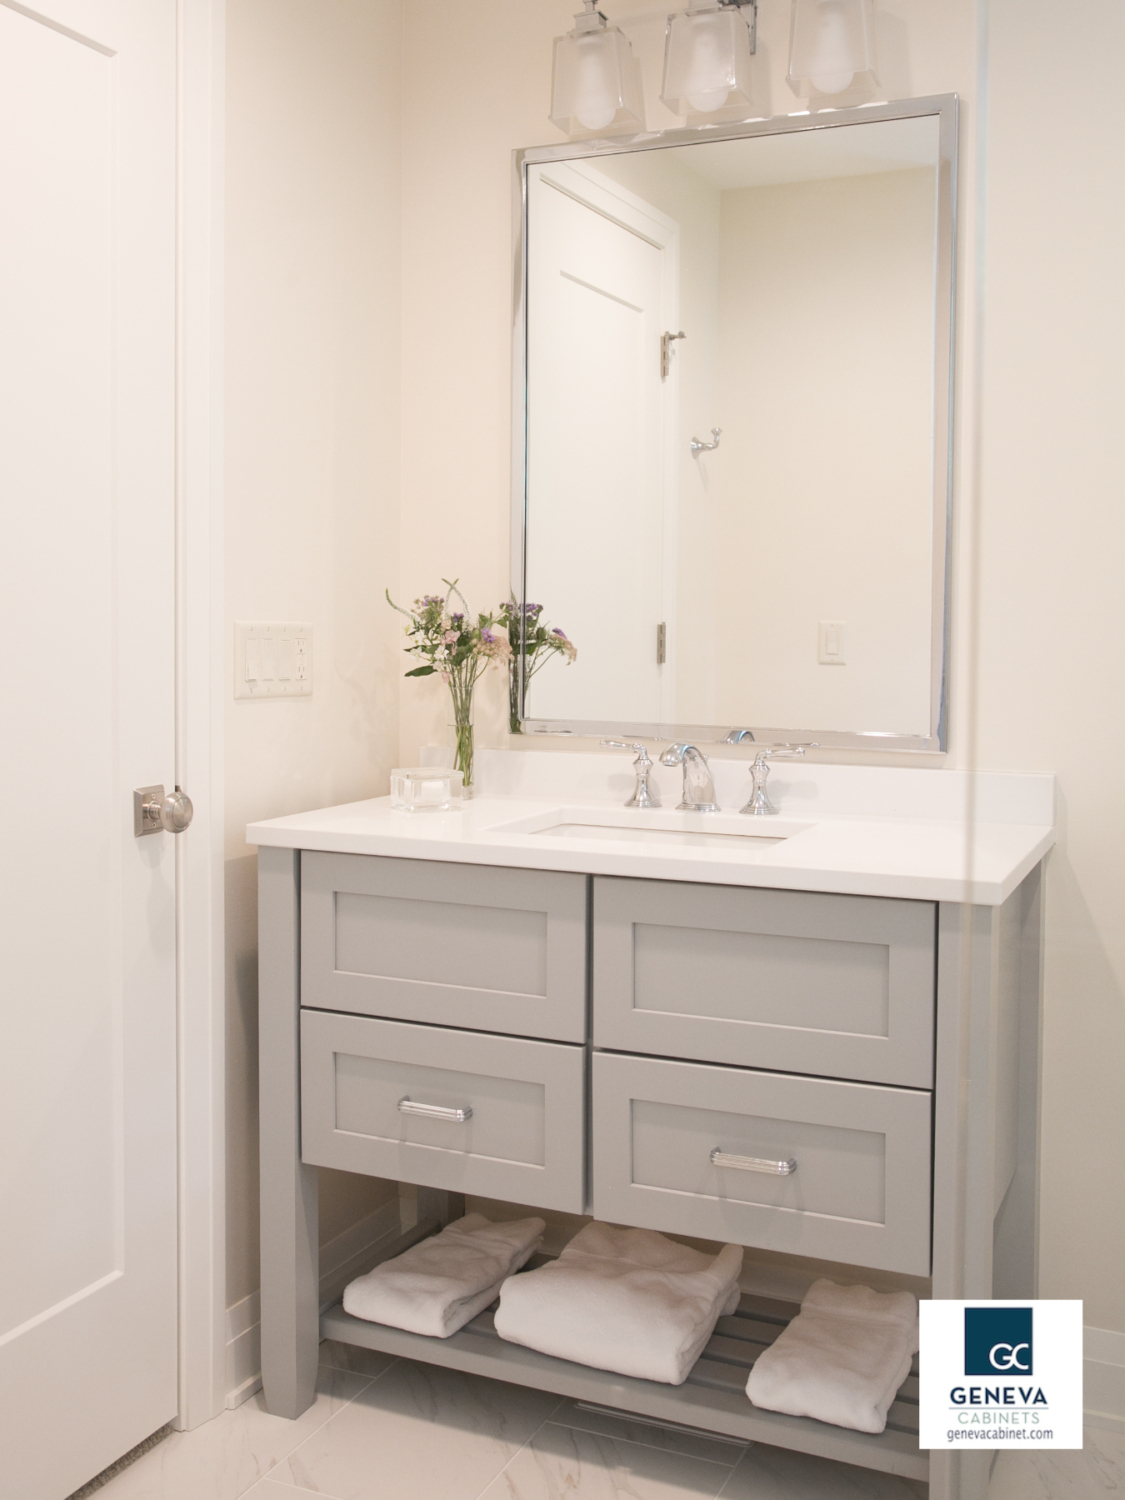 Medallion bathroom vanity with open and closed area